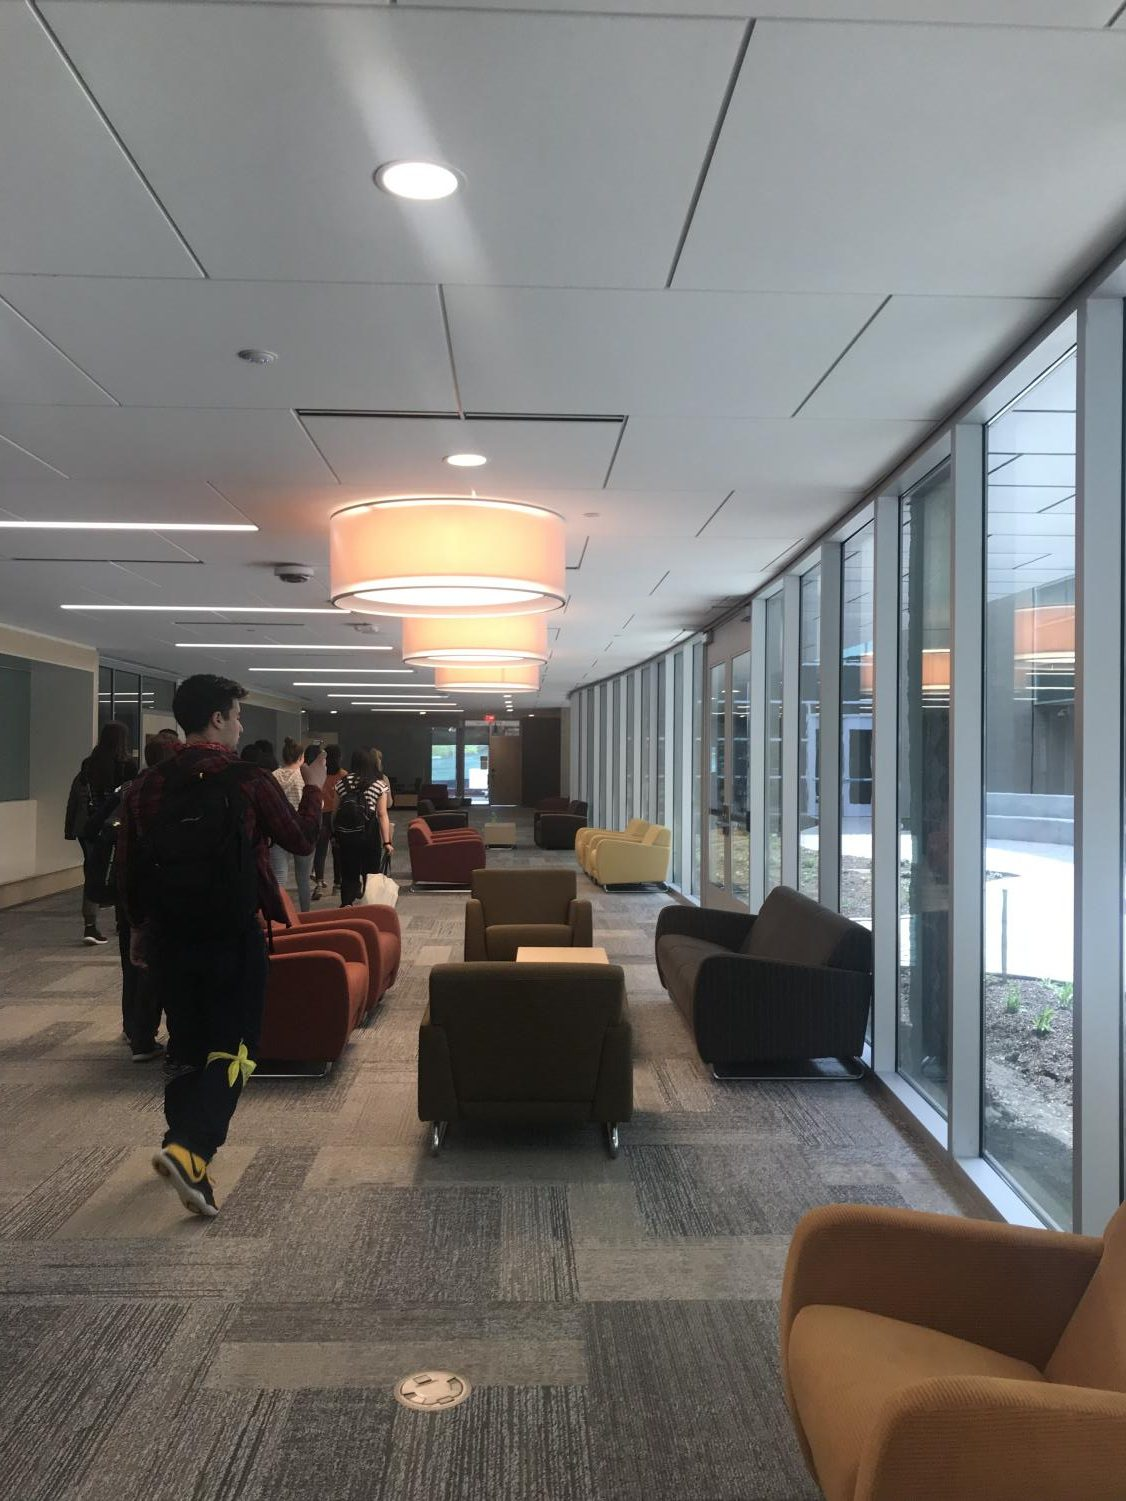 Larger hallways in the new addition are equipped with furniture for student seating between classes. The hallway looks out into the first school courtyard open for student use.